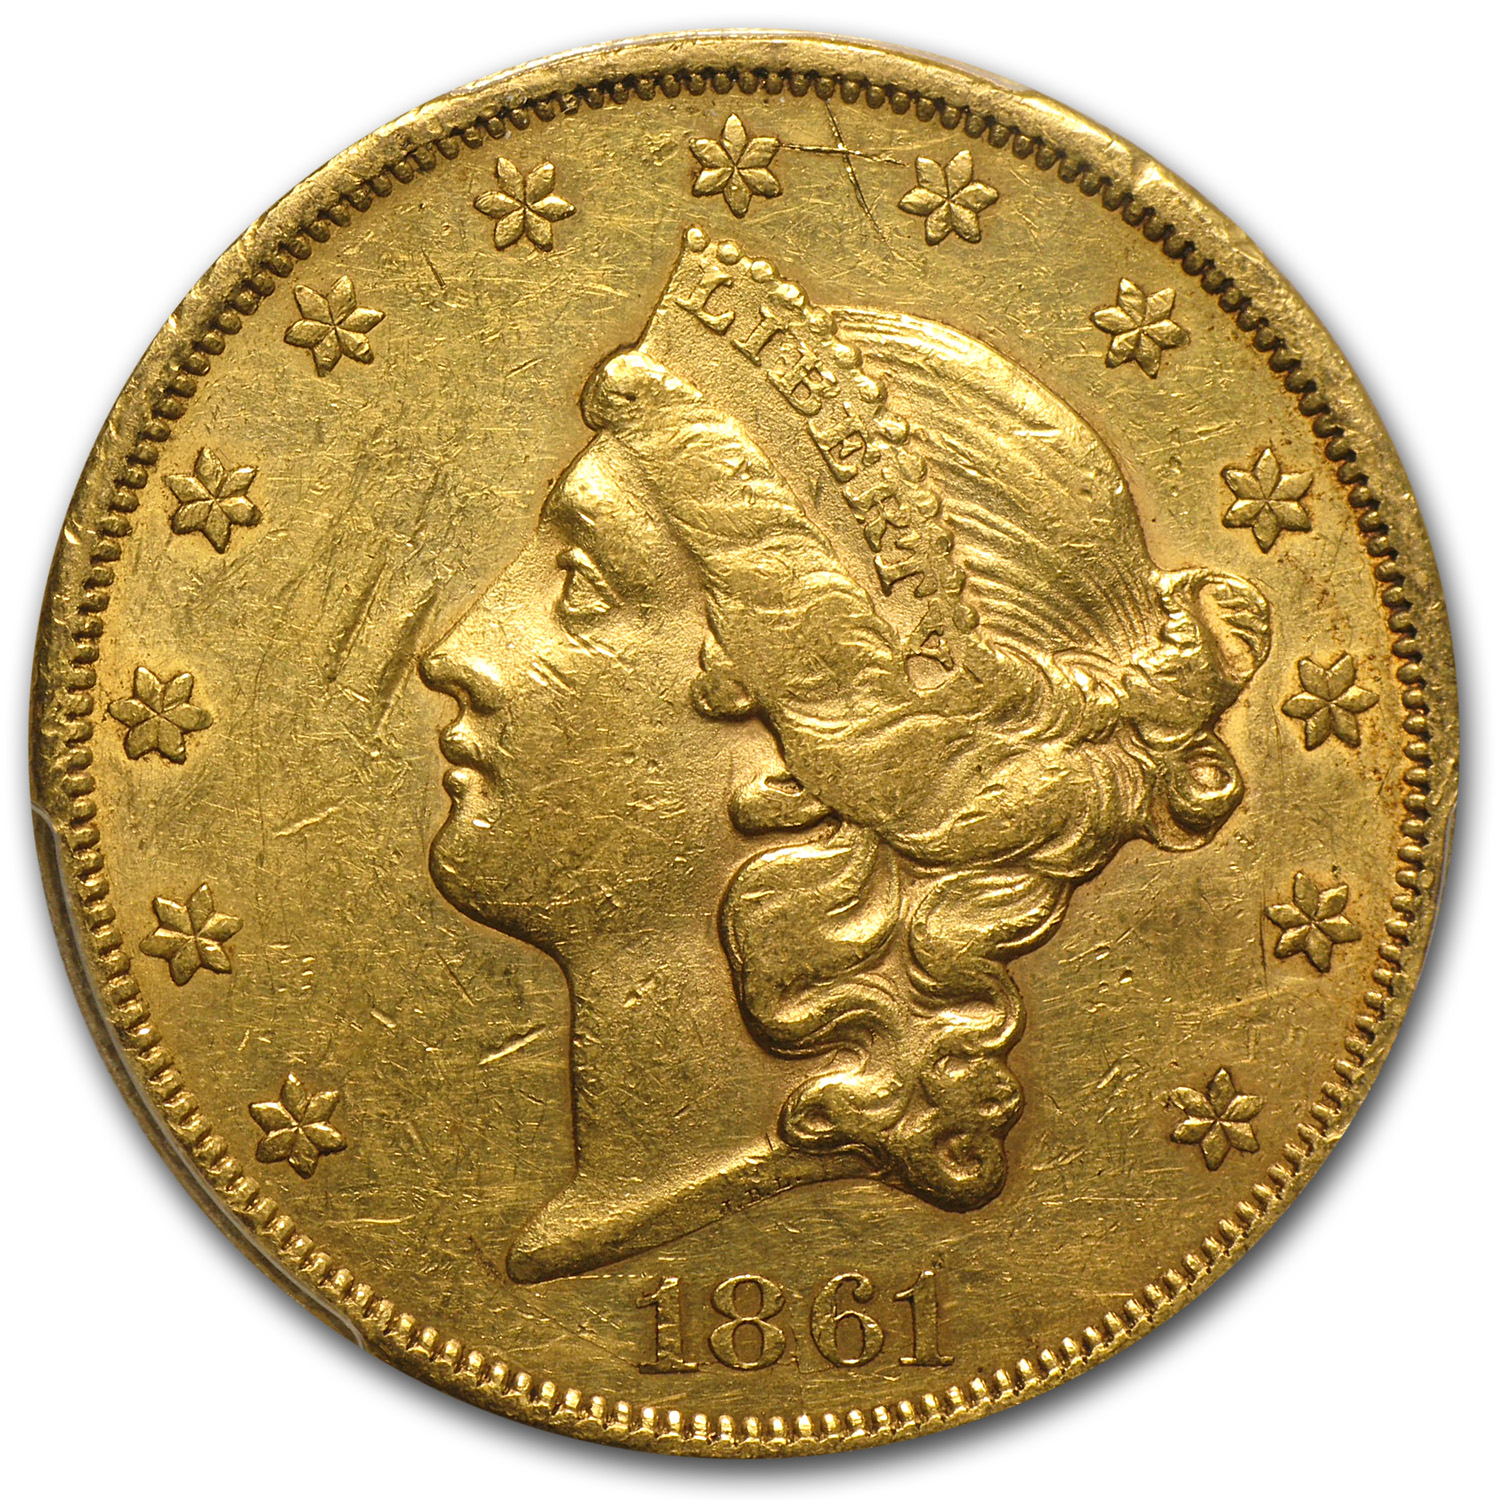 1861 $20 Liberty Gold Double Eagle AU-55 Details PCGS (Graffiti)